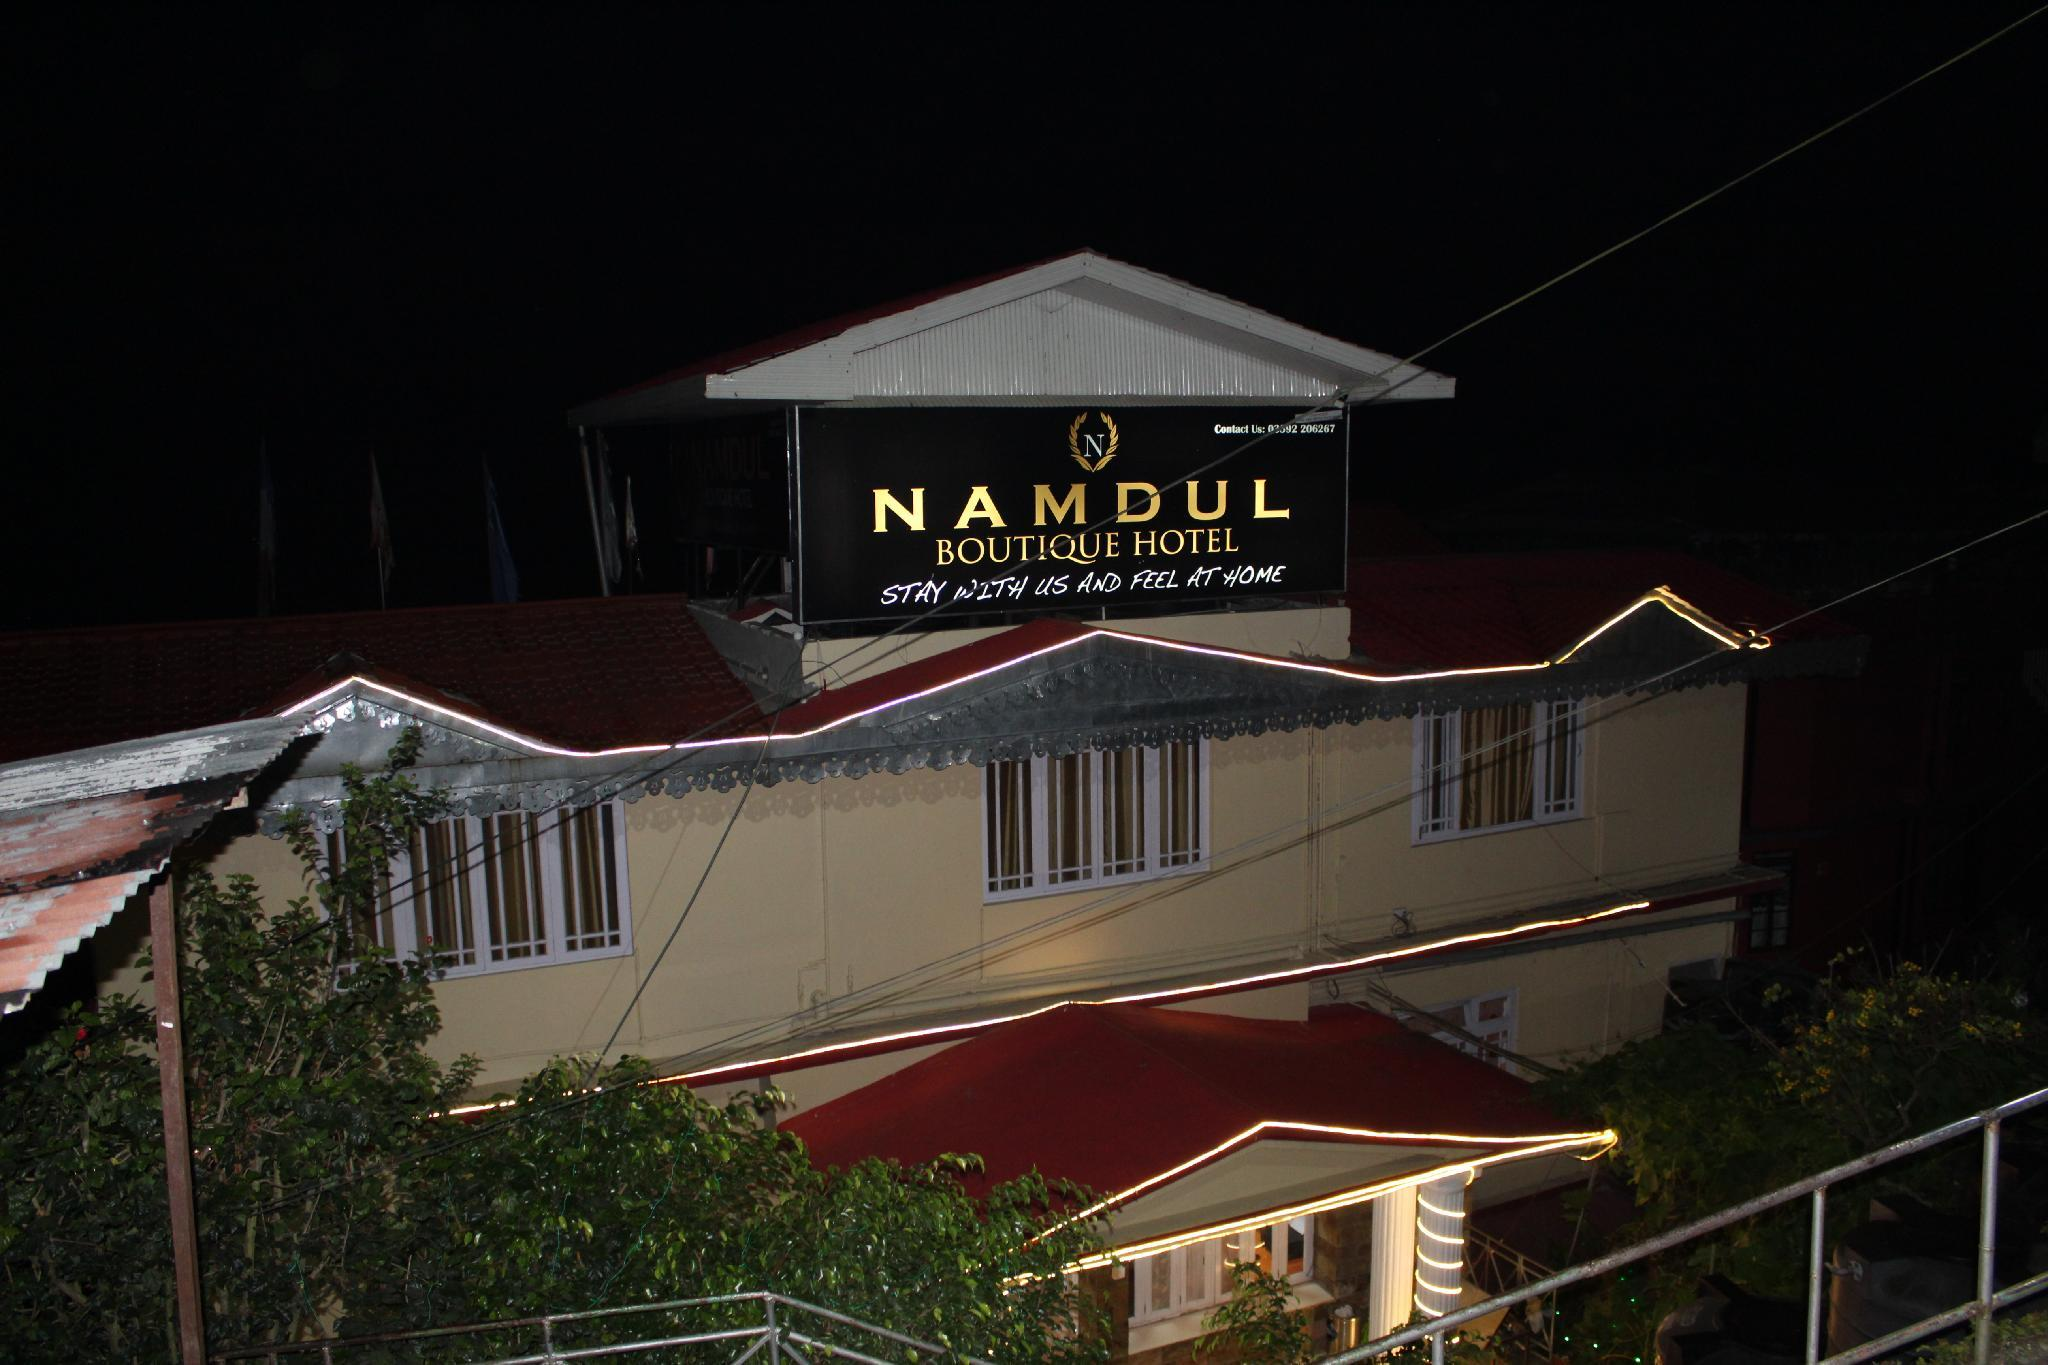 The Namdul Boutique